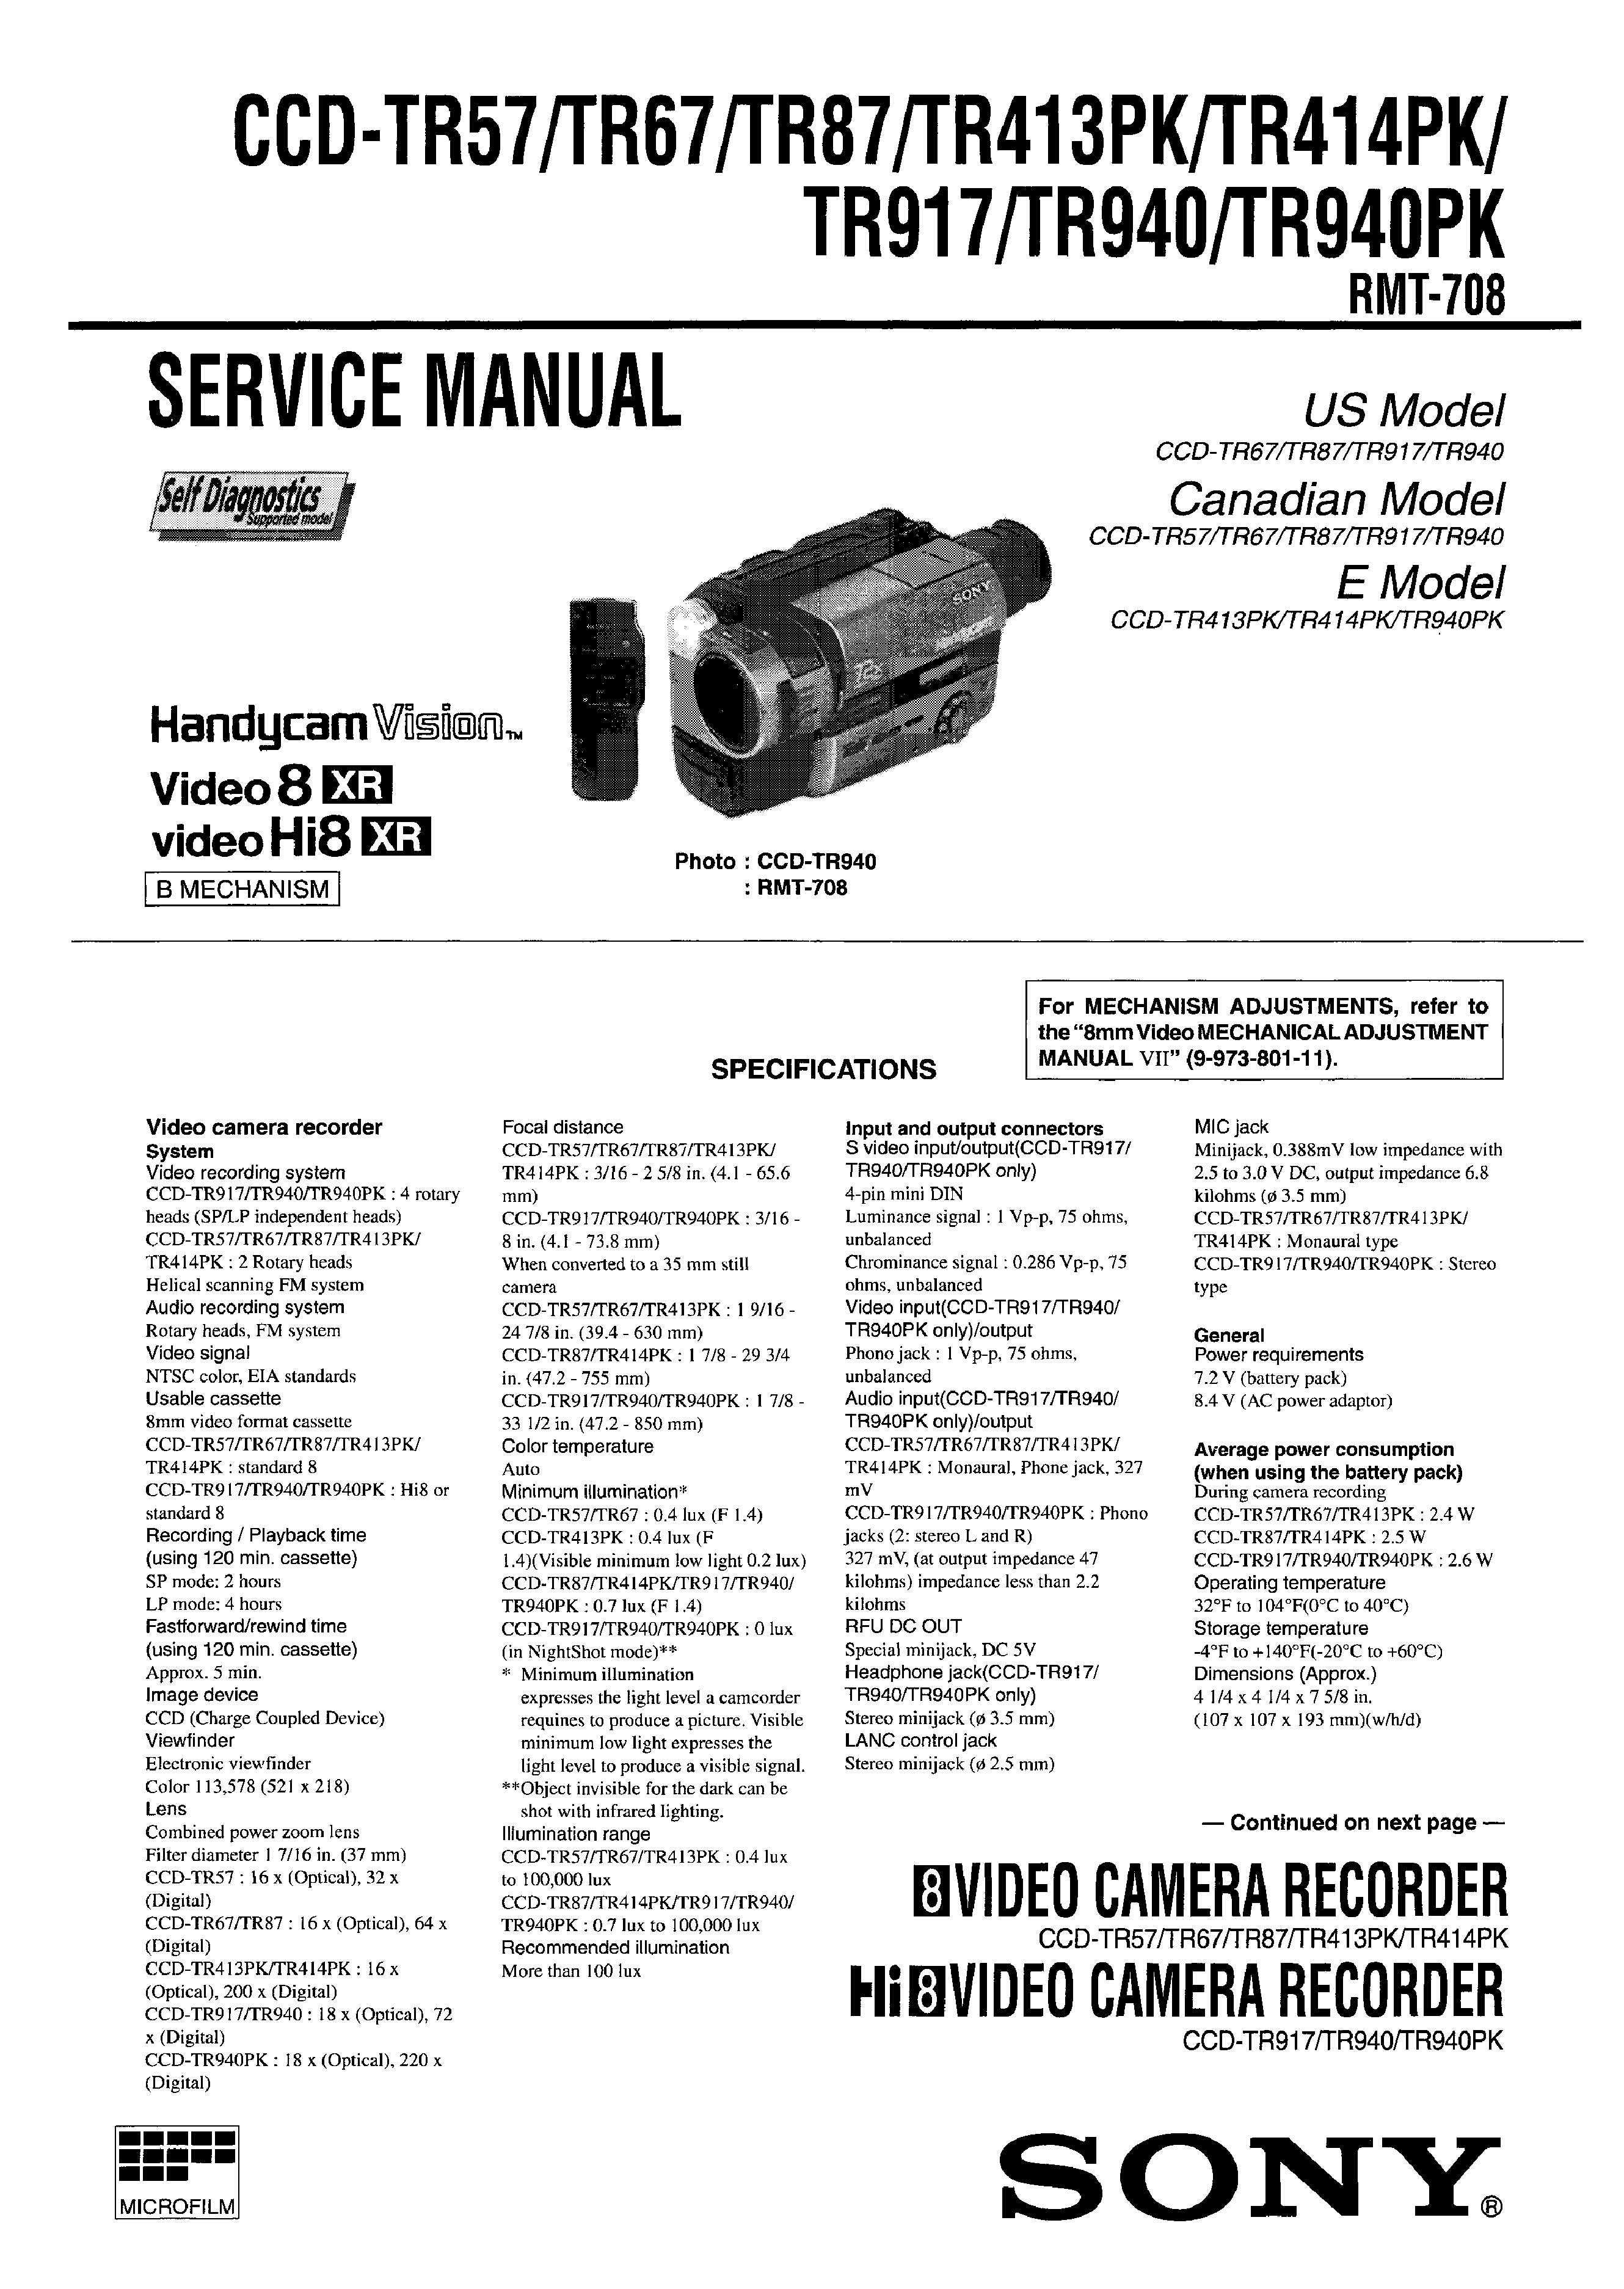 SONY CCDTRV57 - Service Manual Immediate Download